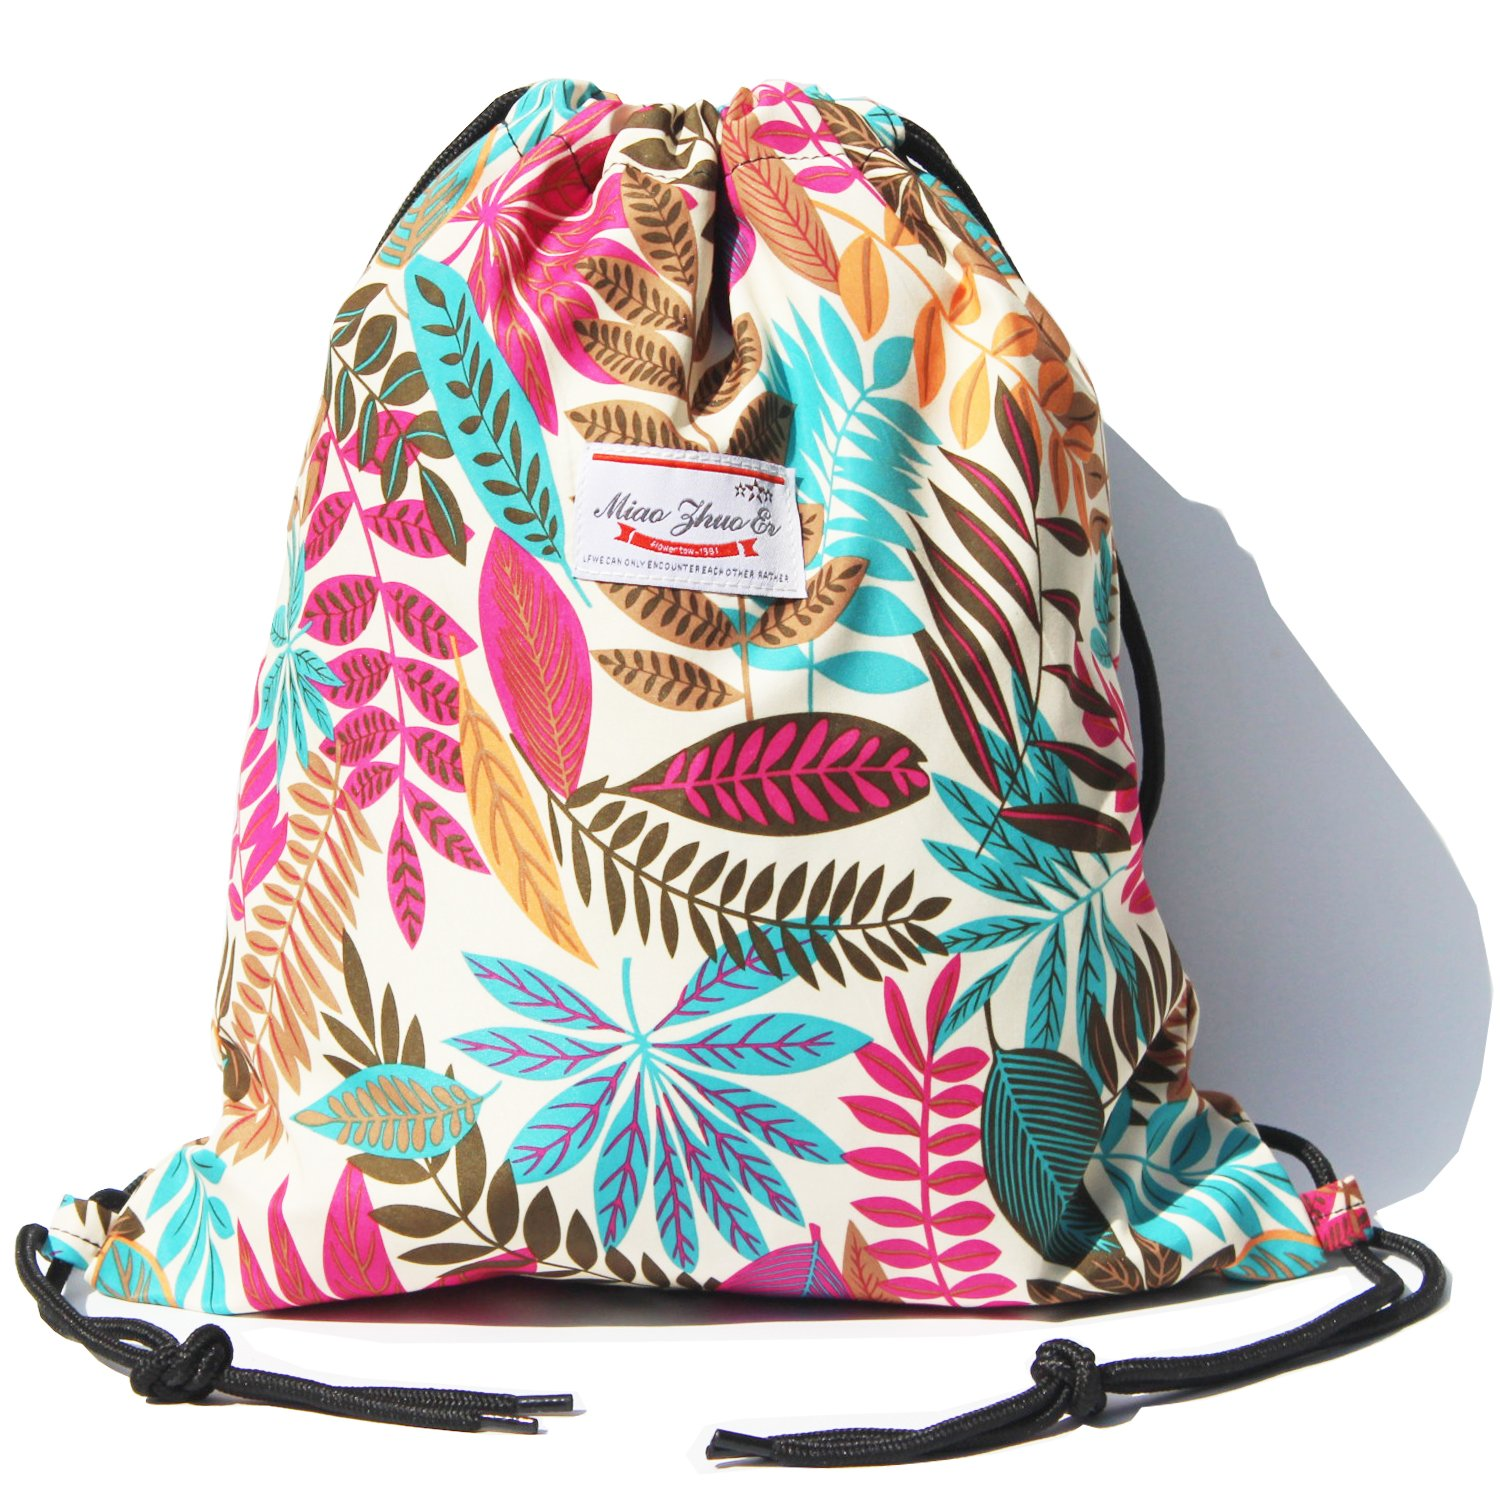 Alpaca Go Drawstring Bag Water Resistant Floral Leaf Lightweight Gym Sackpack for Hiking Yoga Gym Swimming Travel Beach (A - White)